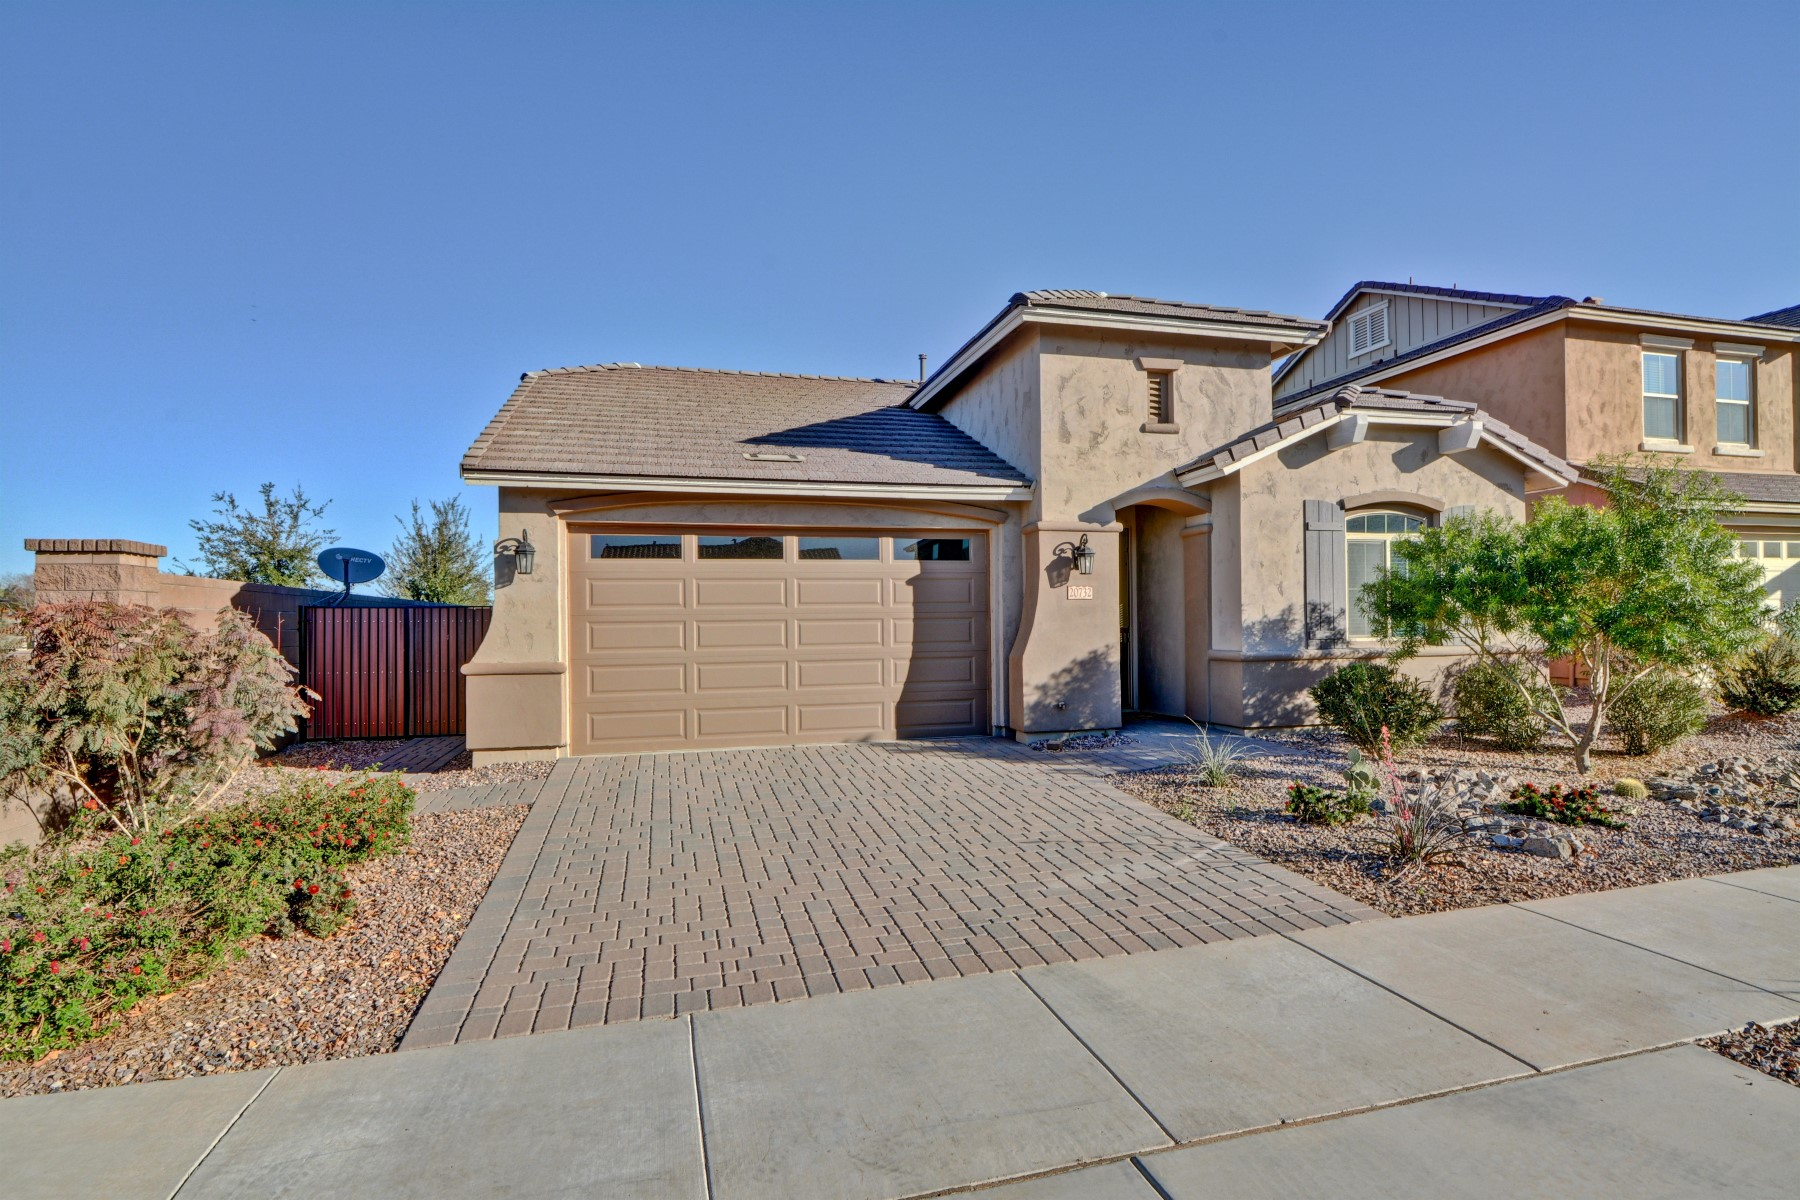 Single Family Home for Sale at Exquisite Fulton Home 20732 E RAVEN DR, Queen Creek, Arizona, 85142 United States